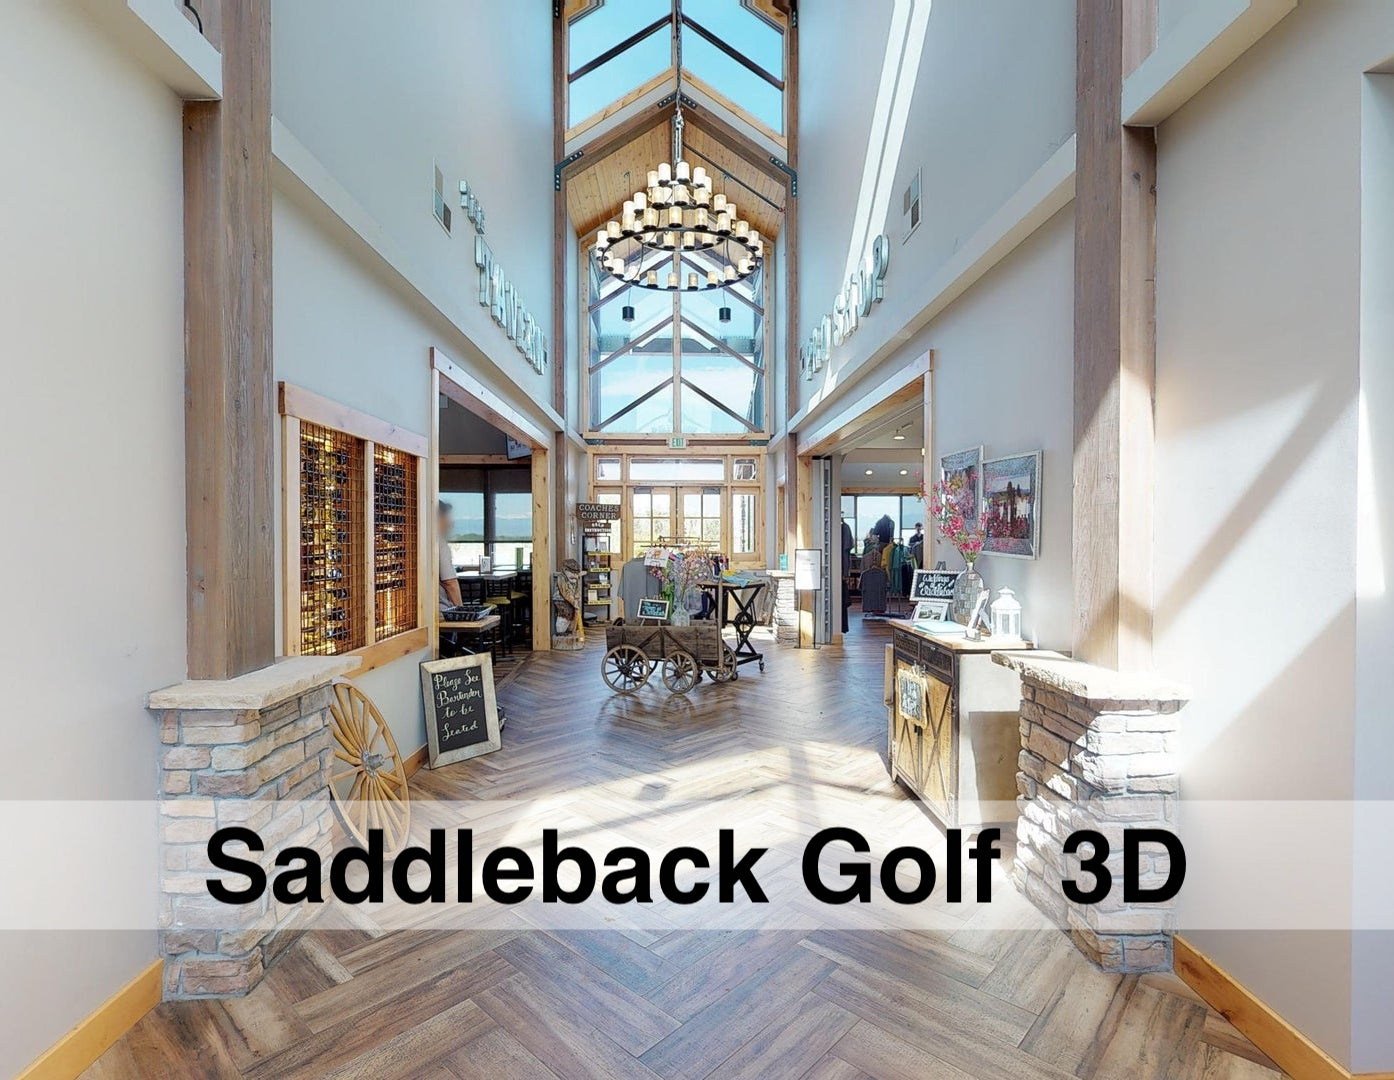 Explore Saddleback Golf Course 3D